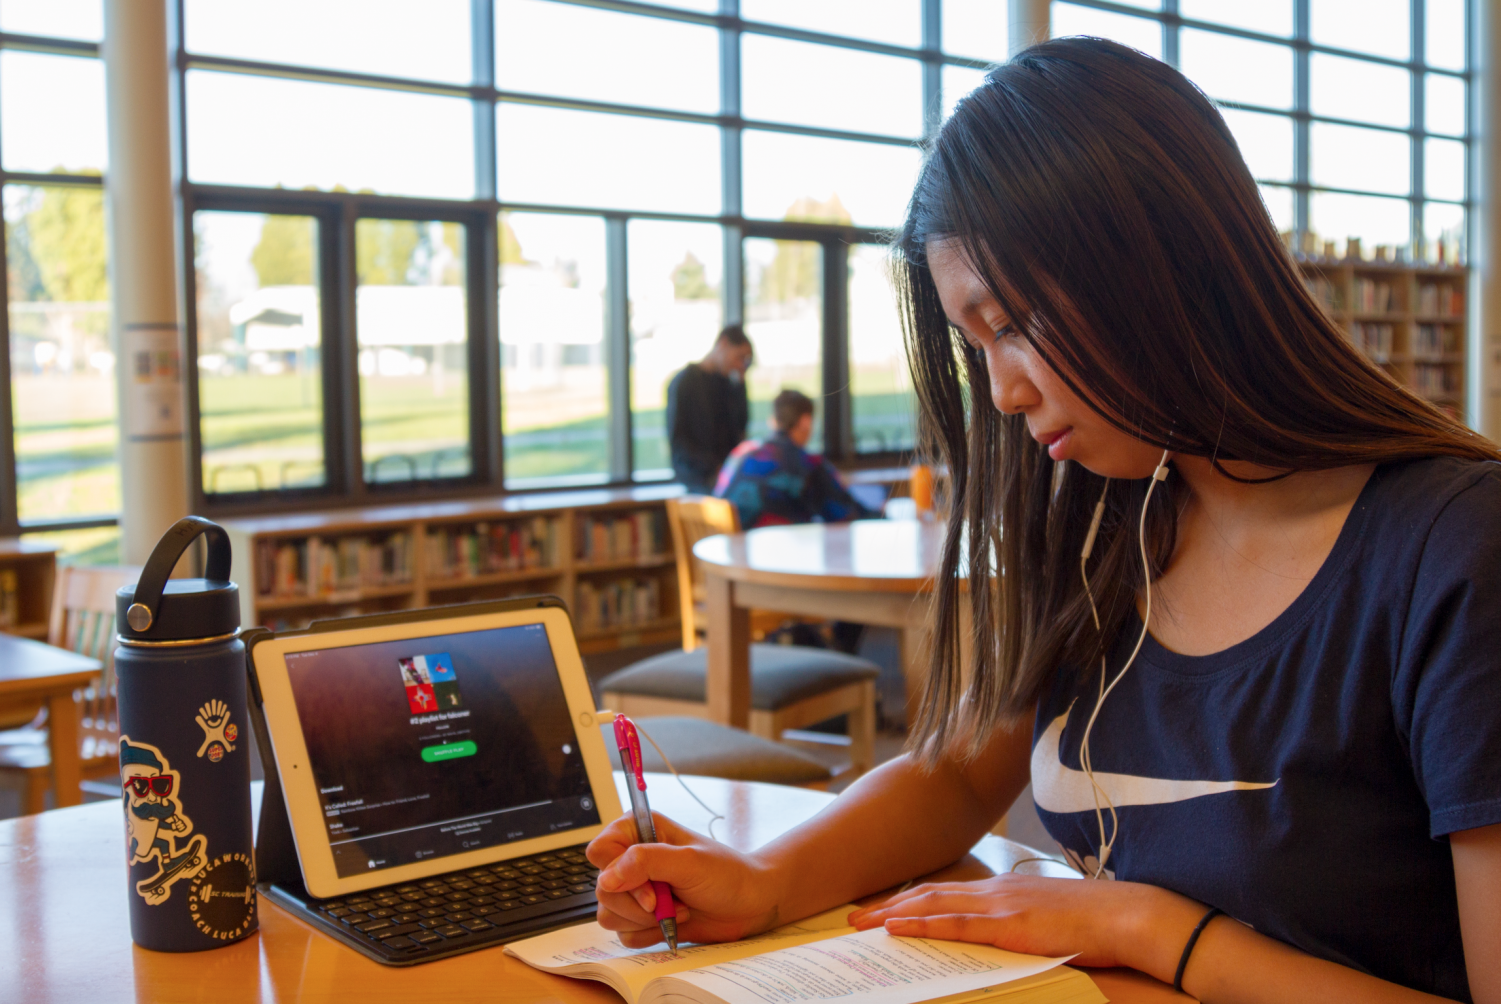 Junior Julia Tran listens to her Spotify playlist while working on homework in the library.